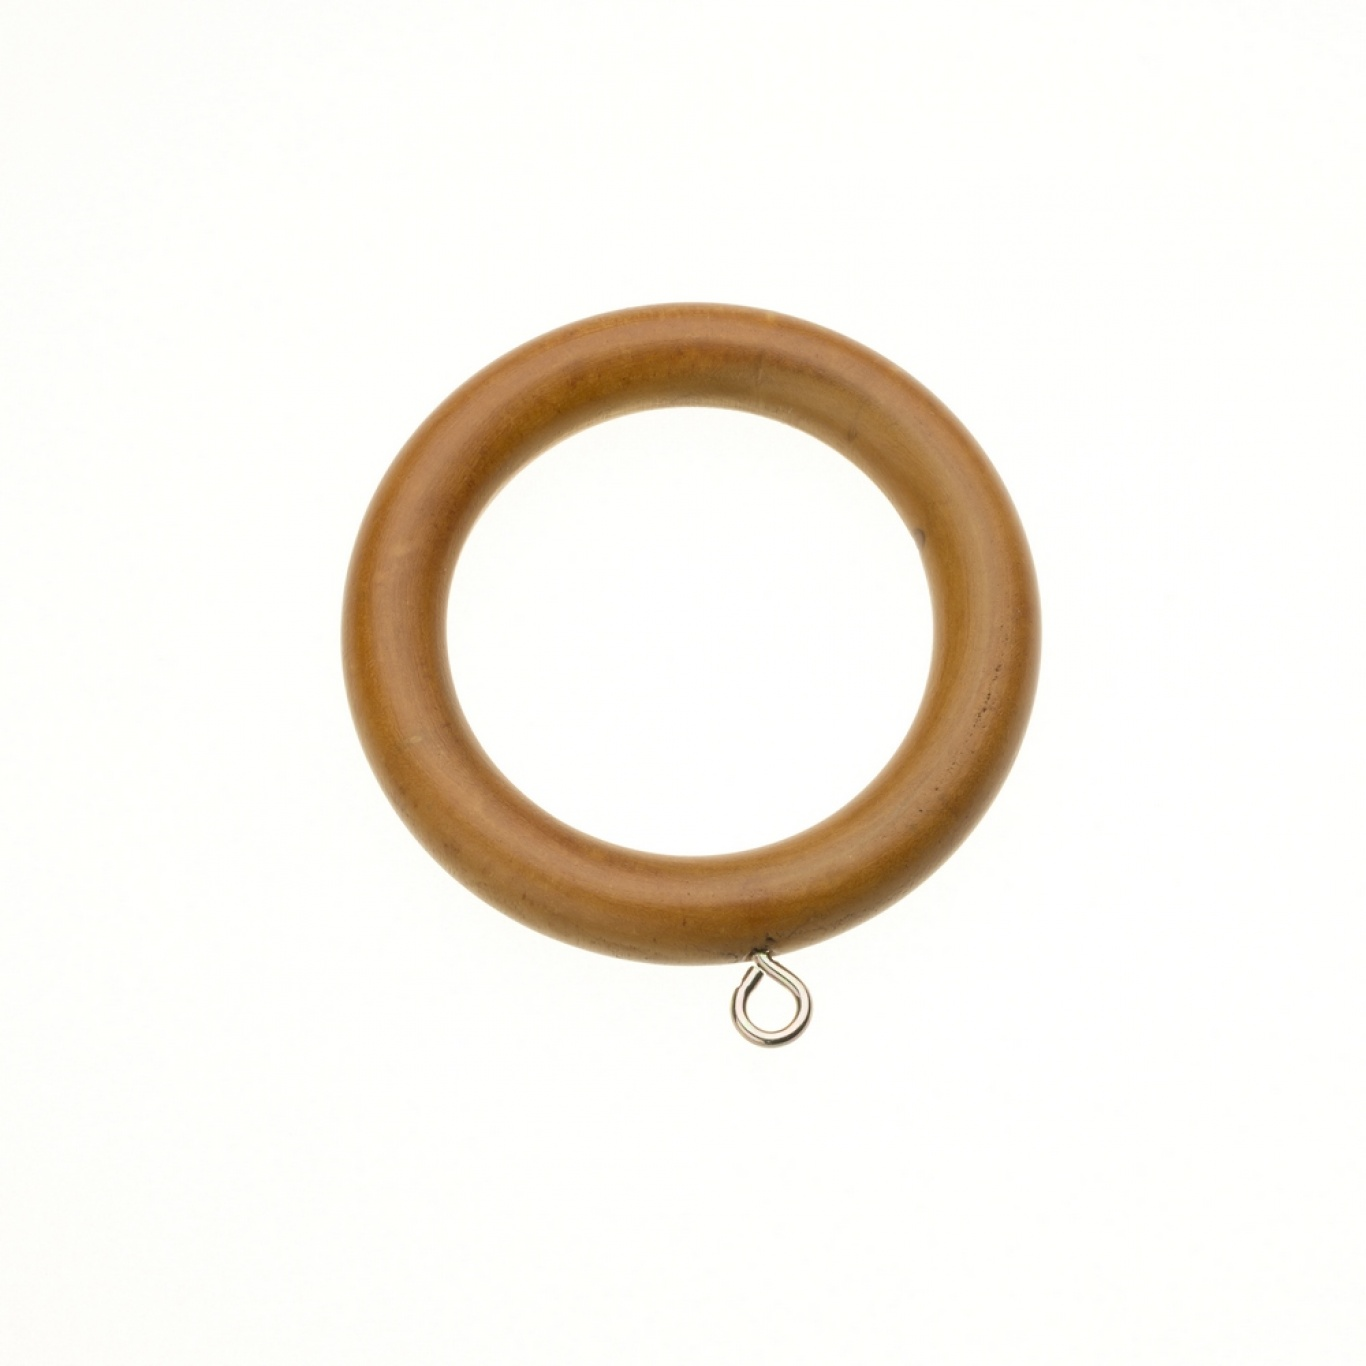 Image of Swish Naturals 35mm Antique Pine Rings Pack of 4